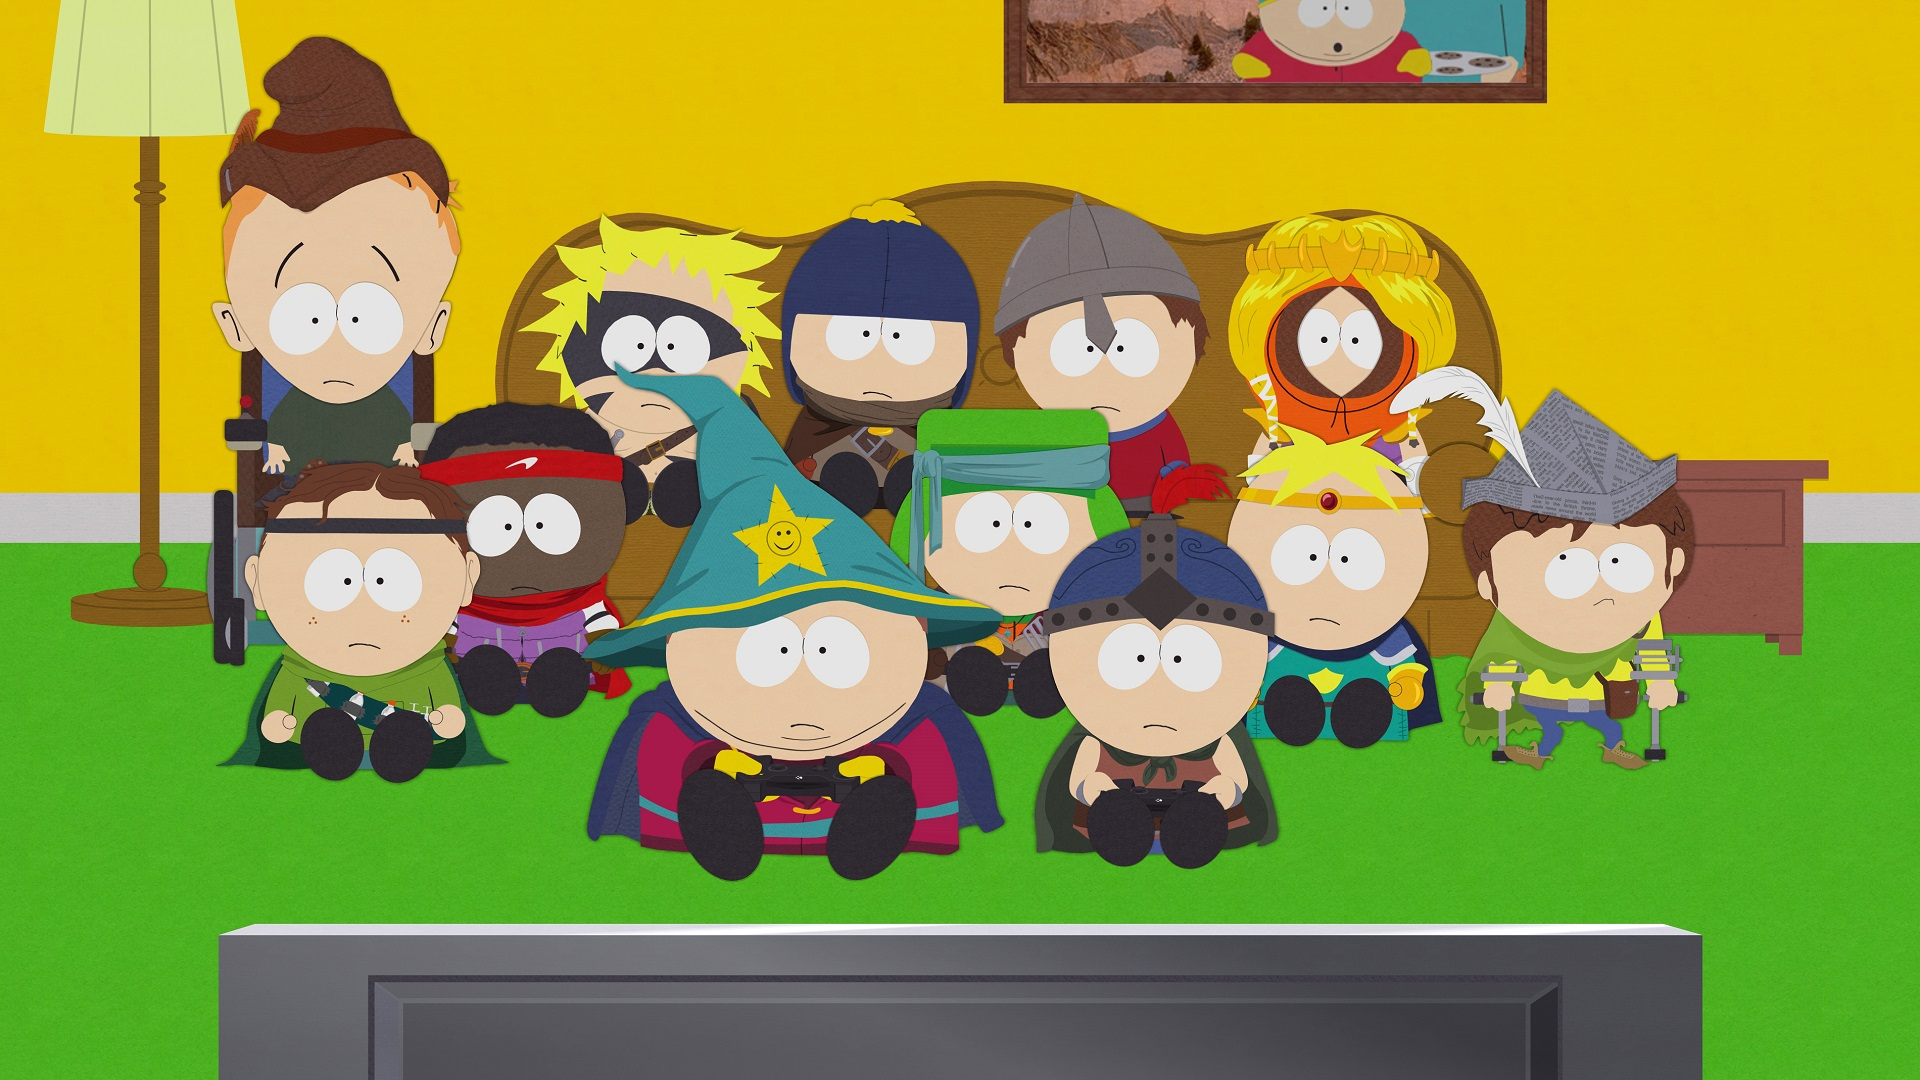 south park games of thrones